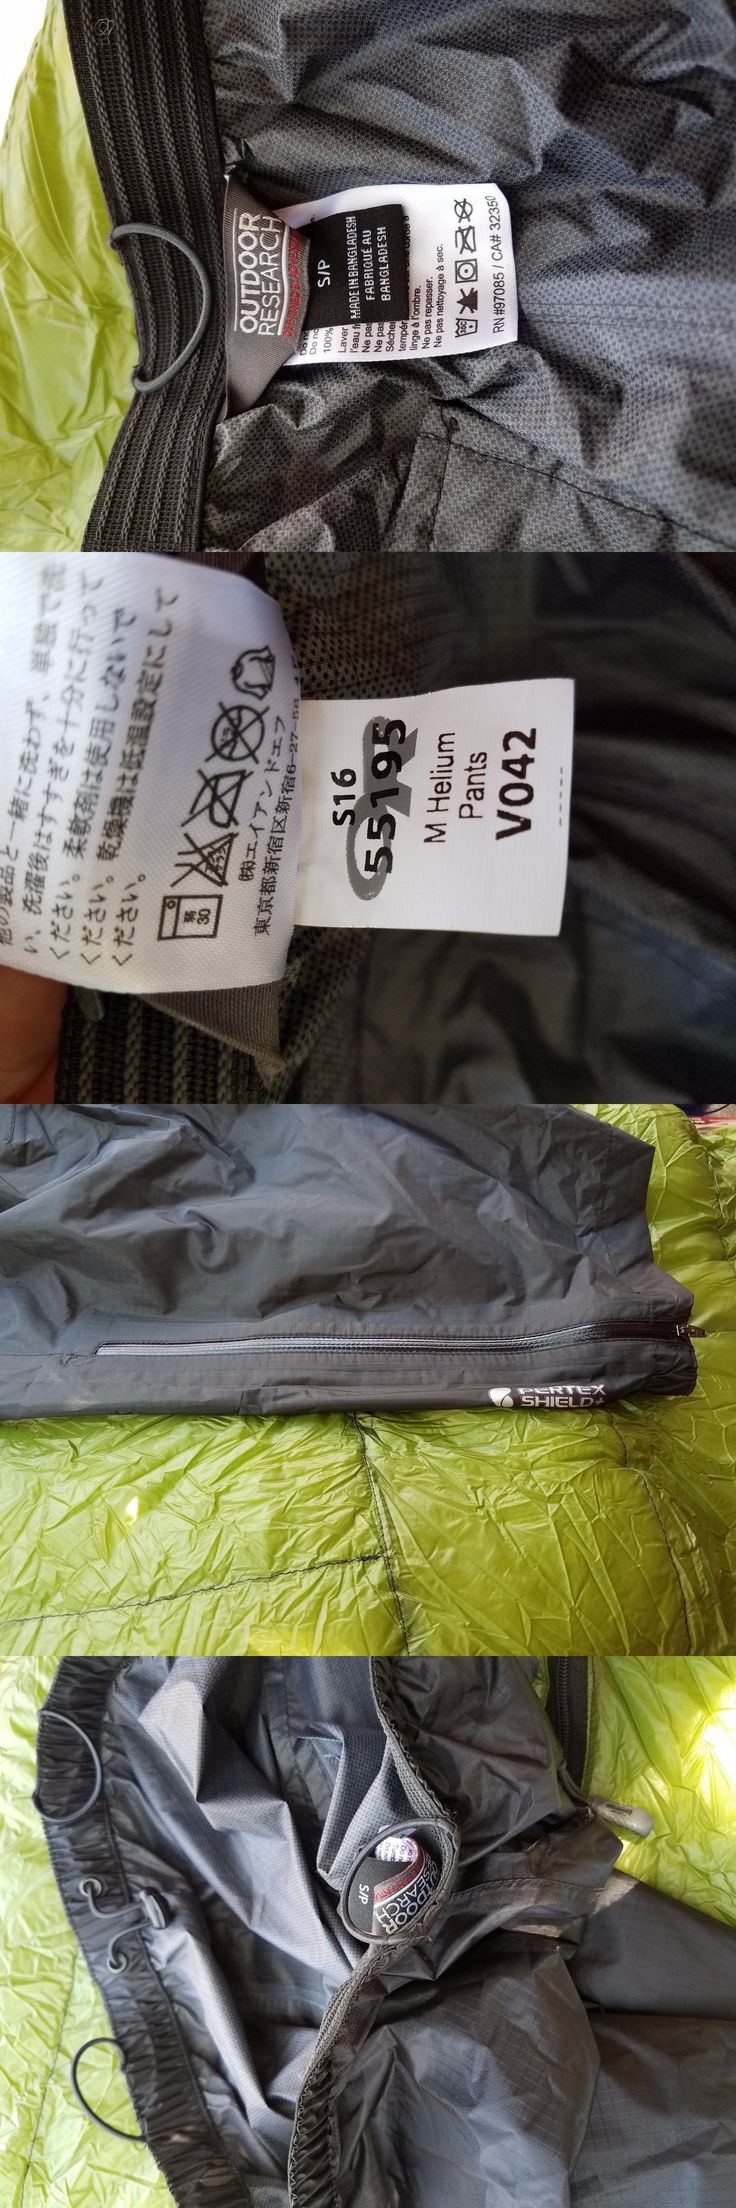 Pants and Shorts 181360: Outdoor Research Men Small Helium Pants -> BUY IT NOW ONLY: $50 on eBay!